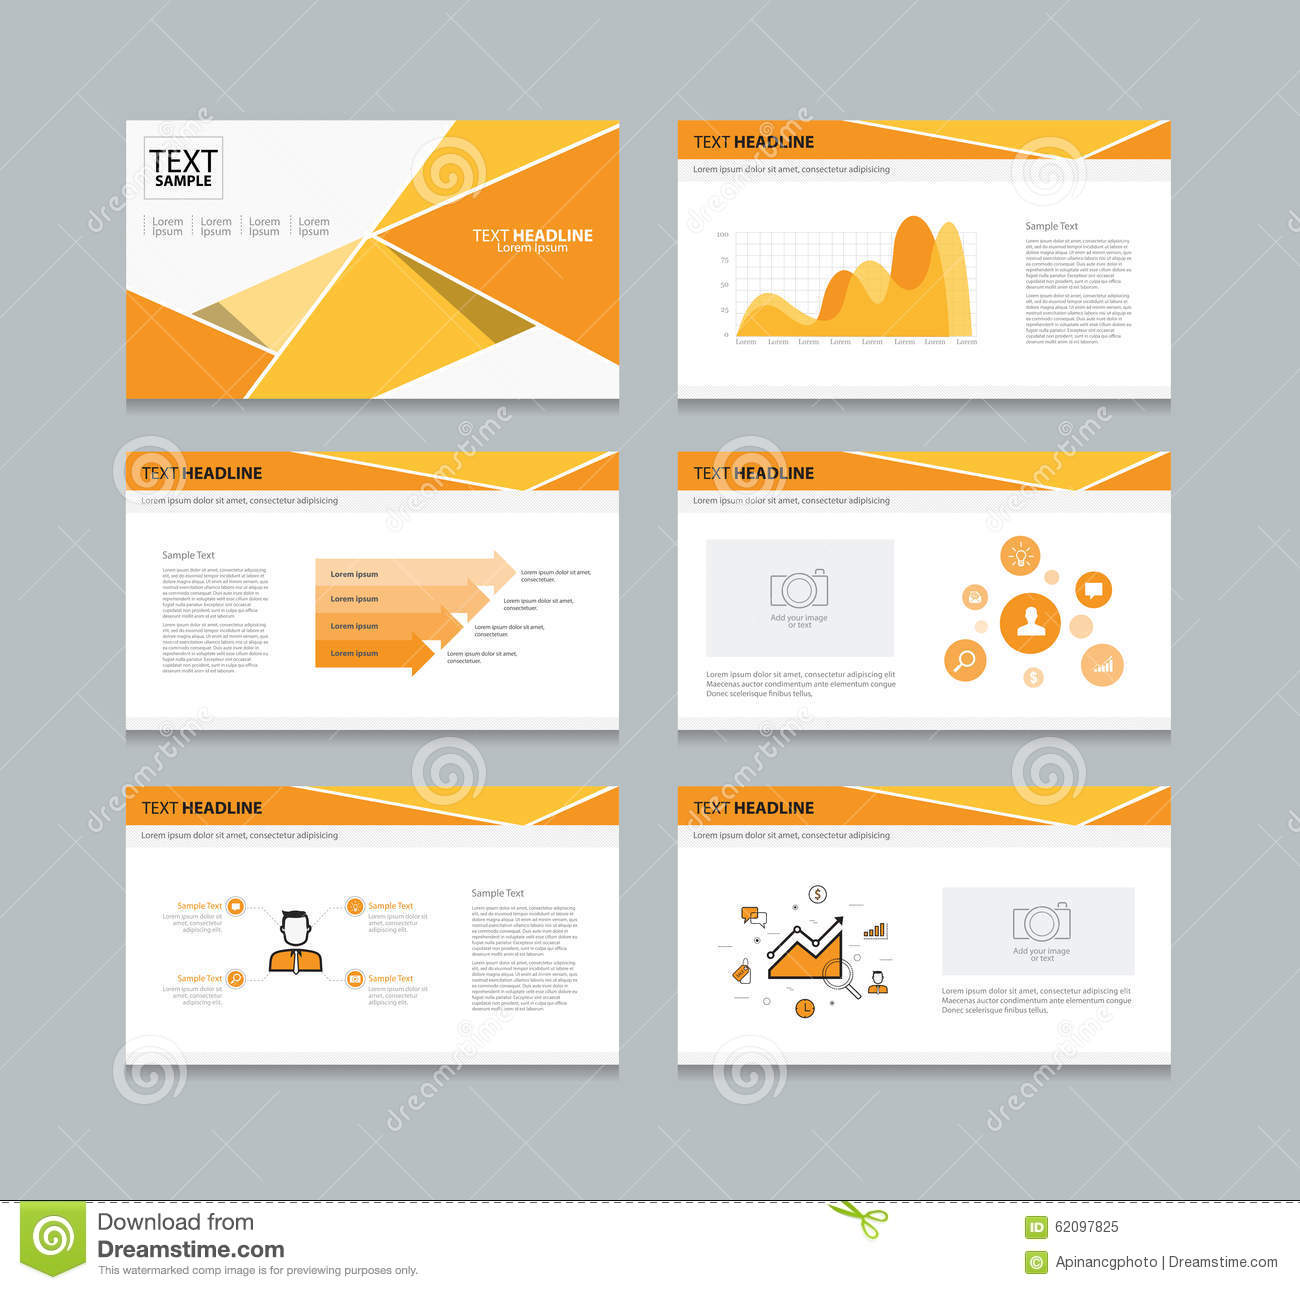 vector template presentation slides background design orange